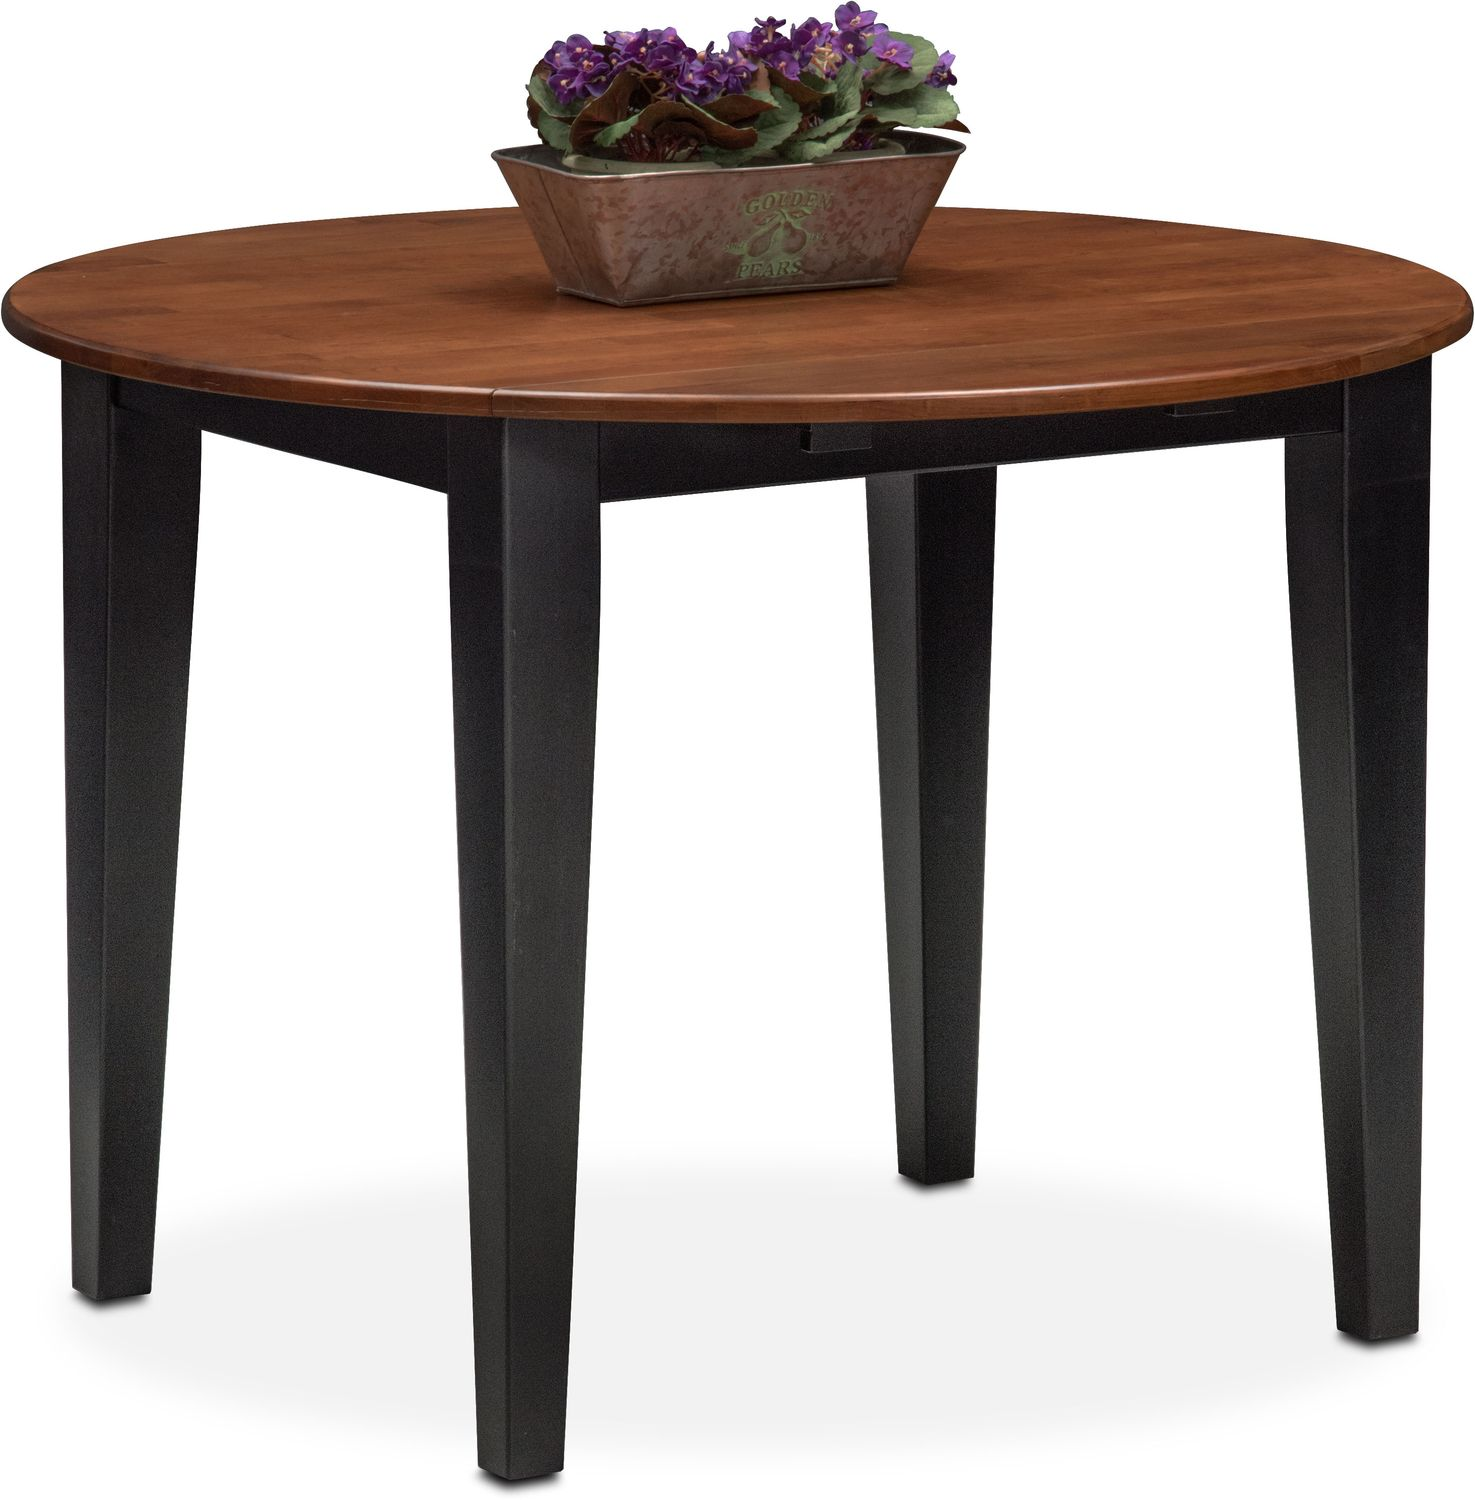 Black Dining Table With Leaf: Nantucket Drop-Leaf Table - Black And Cherry